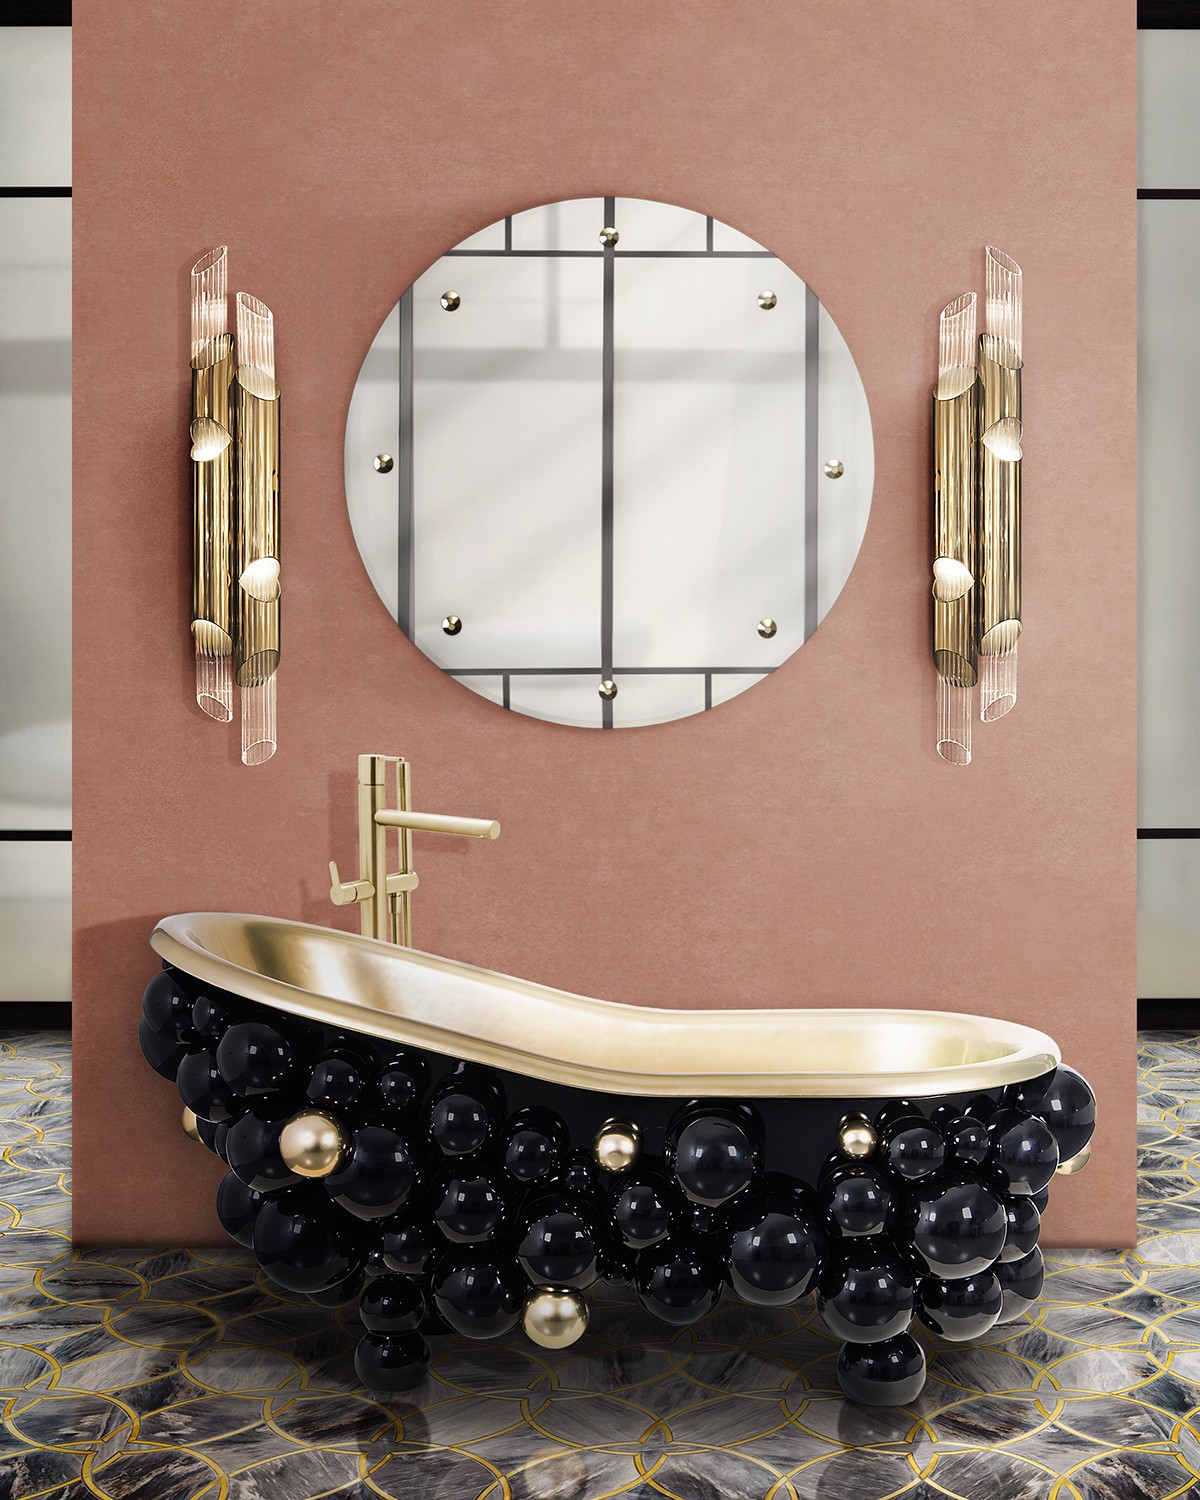 Pink Interiors: The Importance of Color In Interior Design pink interiors Pink Interiors: The Importance of Color In Interior Design coral pink bathroom with newton bathtub and glimmer mirror